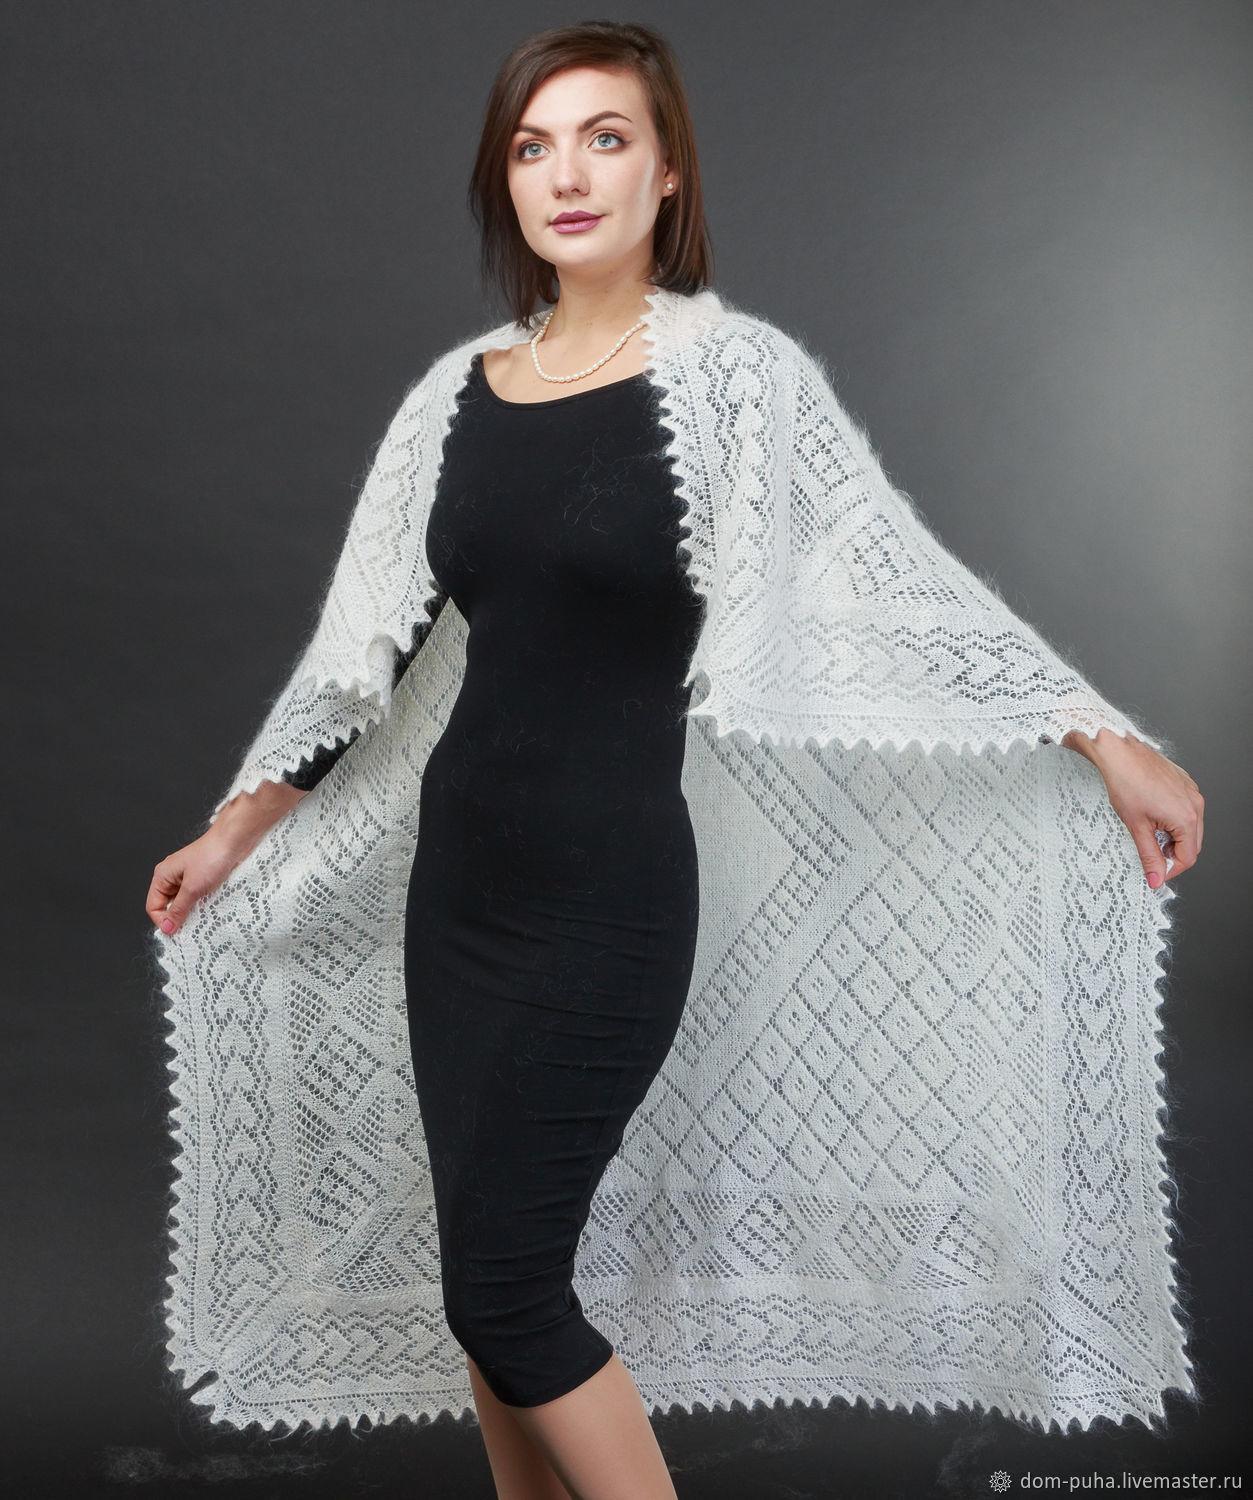 Downy shawl in white with pattern, Shawls, Moscow,  Фото №1